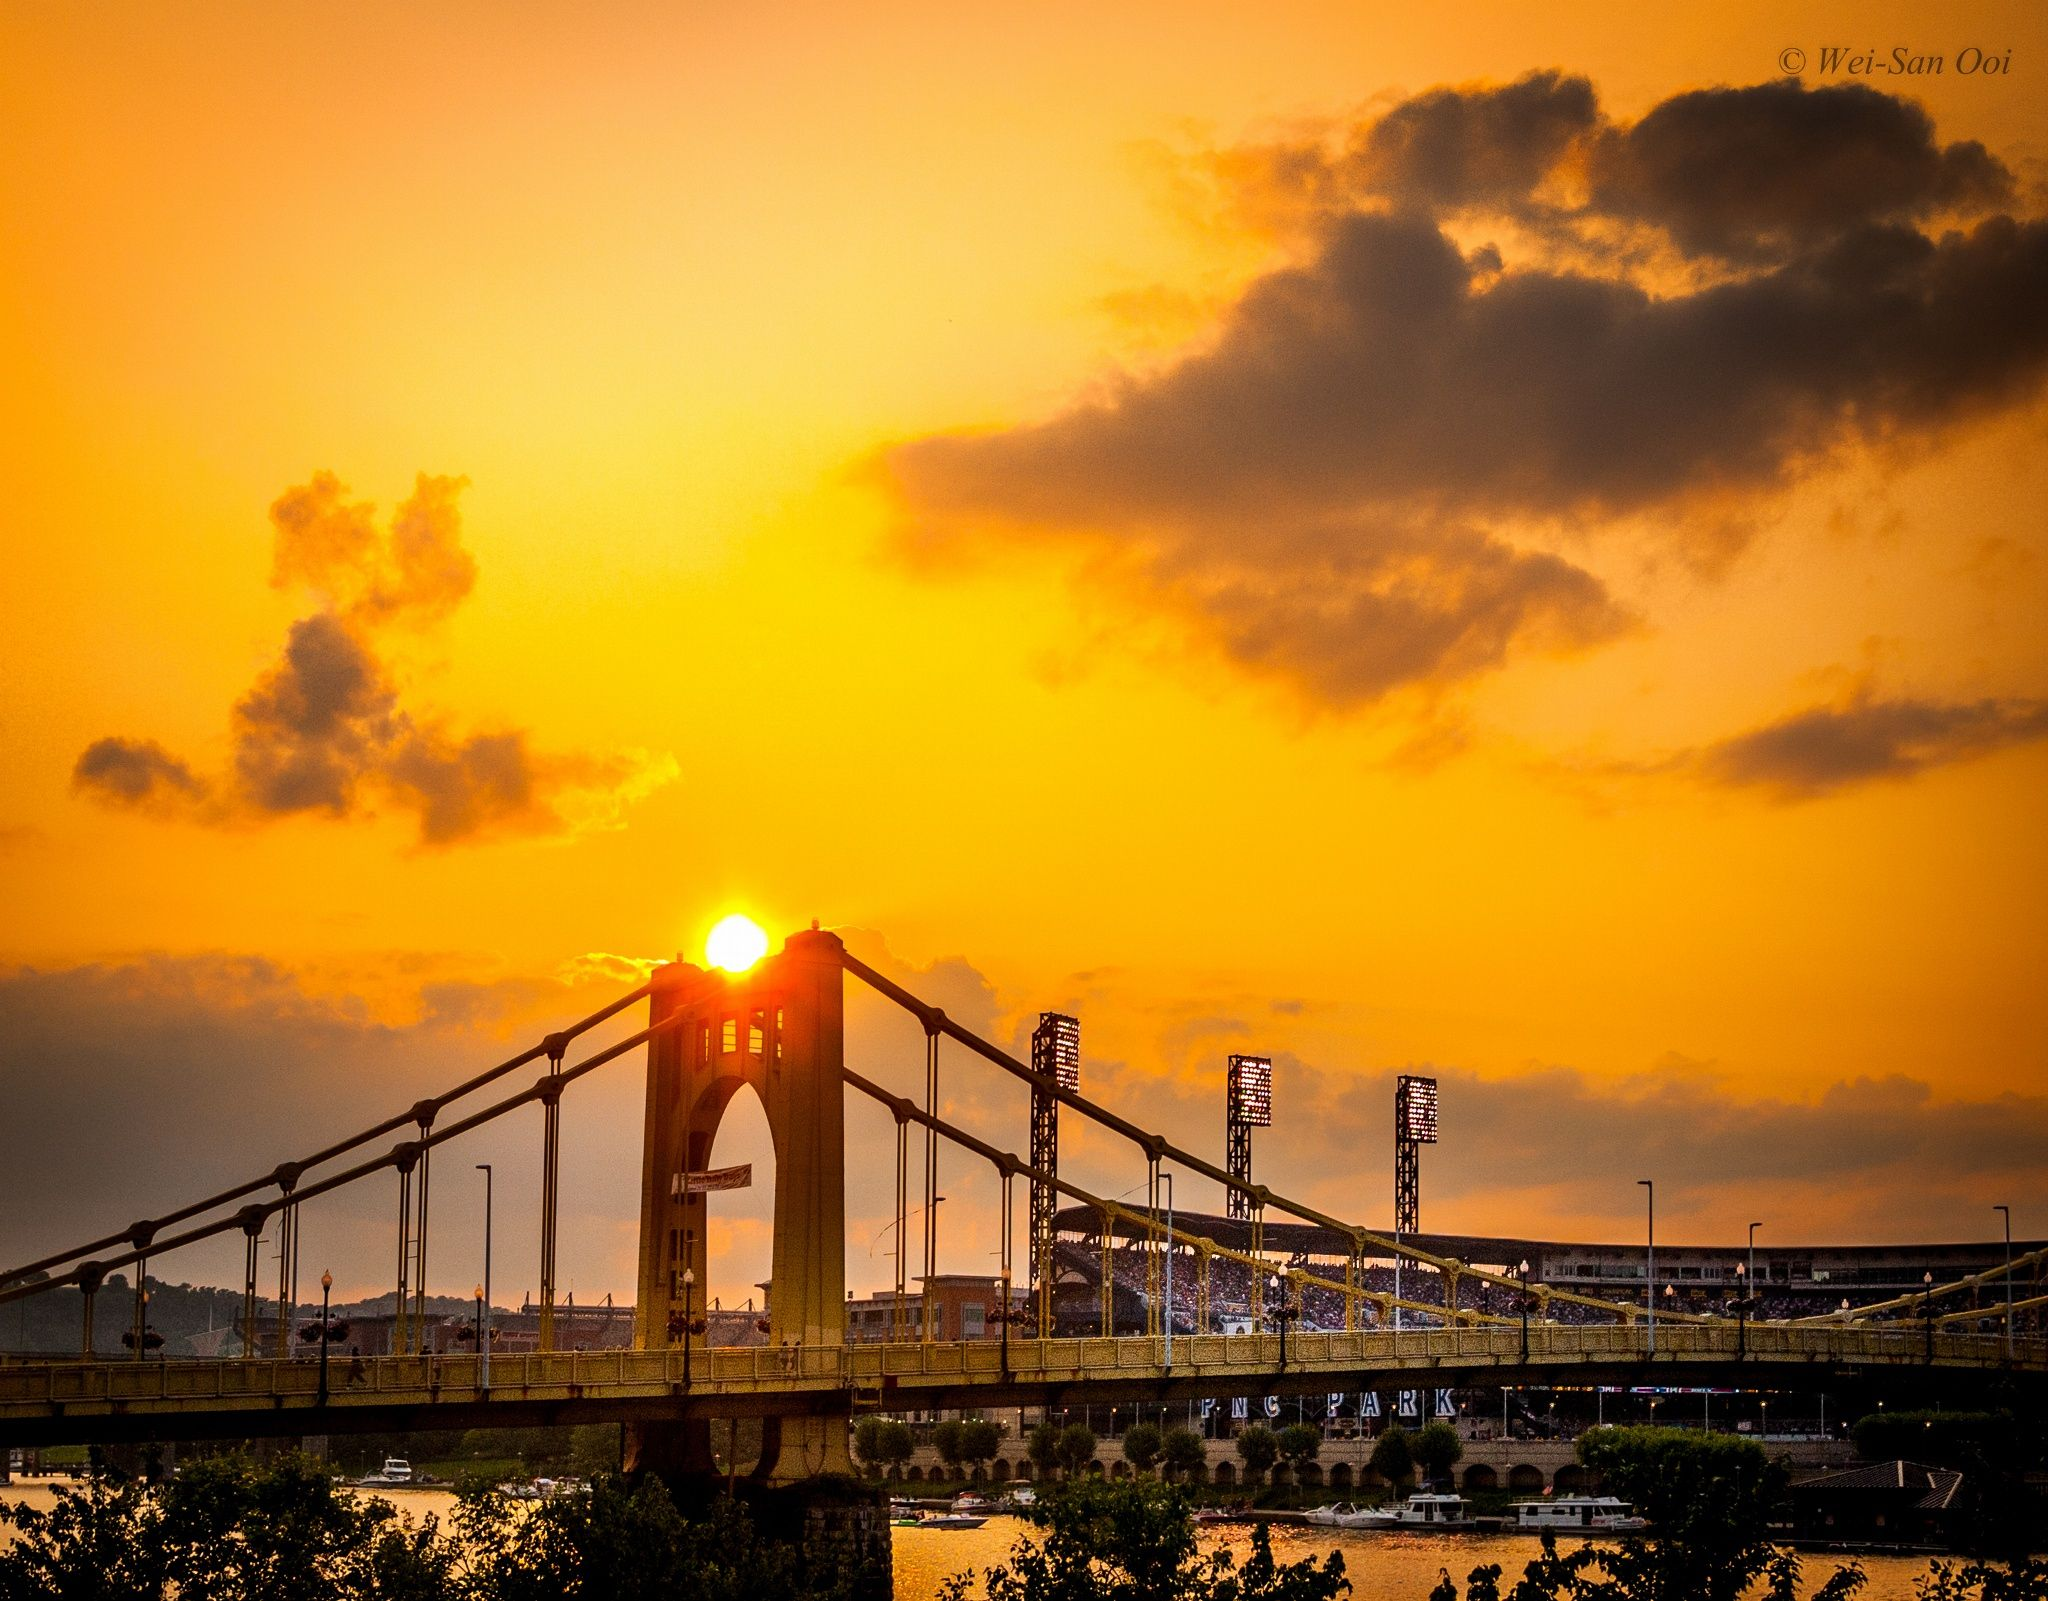 Fotografia The Sun On The Bridge de Wei-San Ooi  na 500px